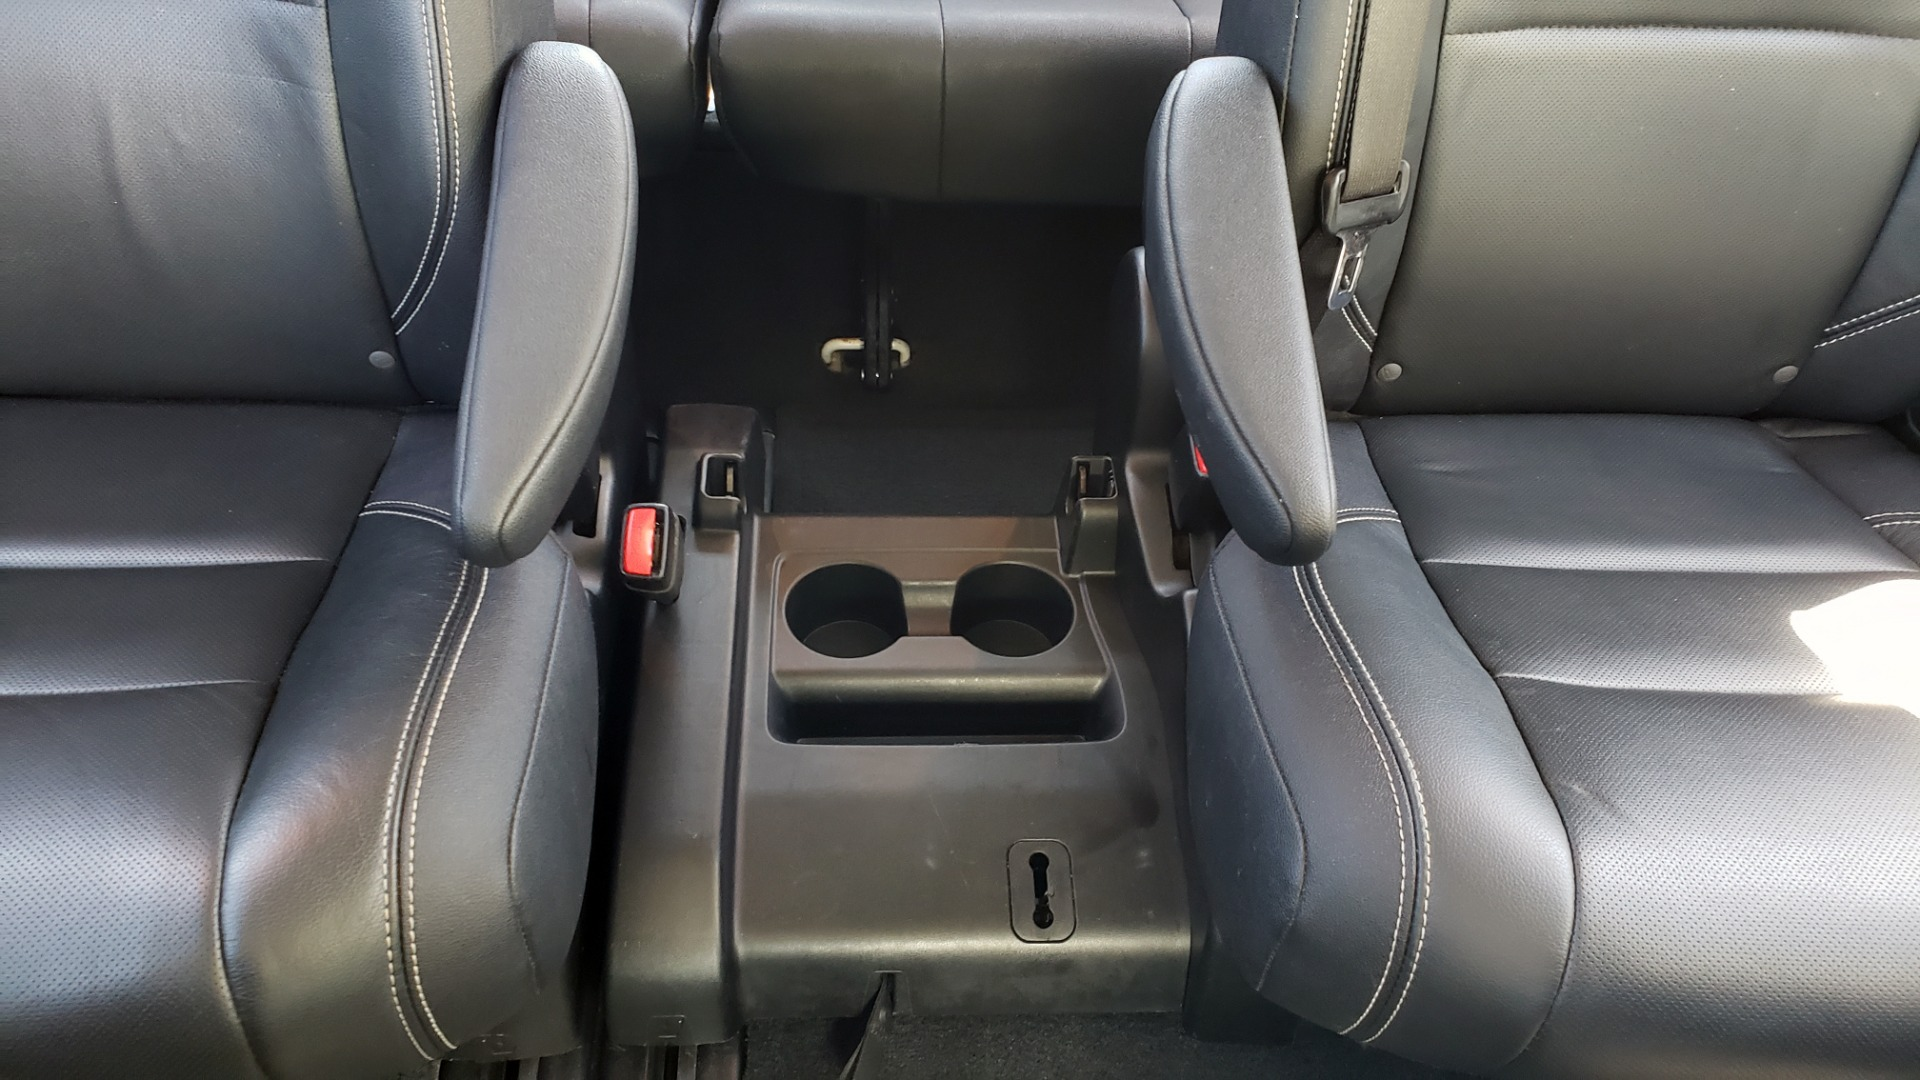 Used 2015 Toyota SIENNA SE 3.5L / FWD / 3-ROWS / 8-PASS / SUNROOF / DVD / REARVIEW for sale $21,995 at Formula Imports in Charlotte NC 28227 73